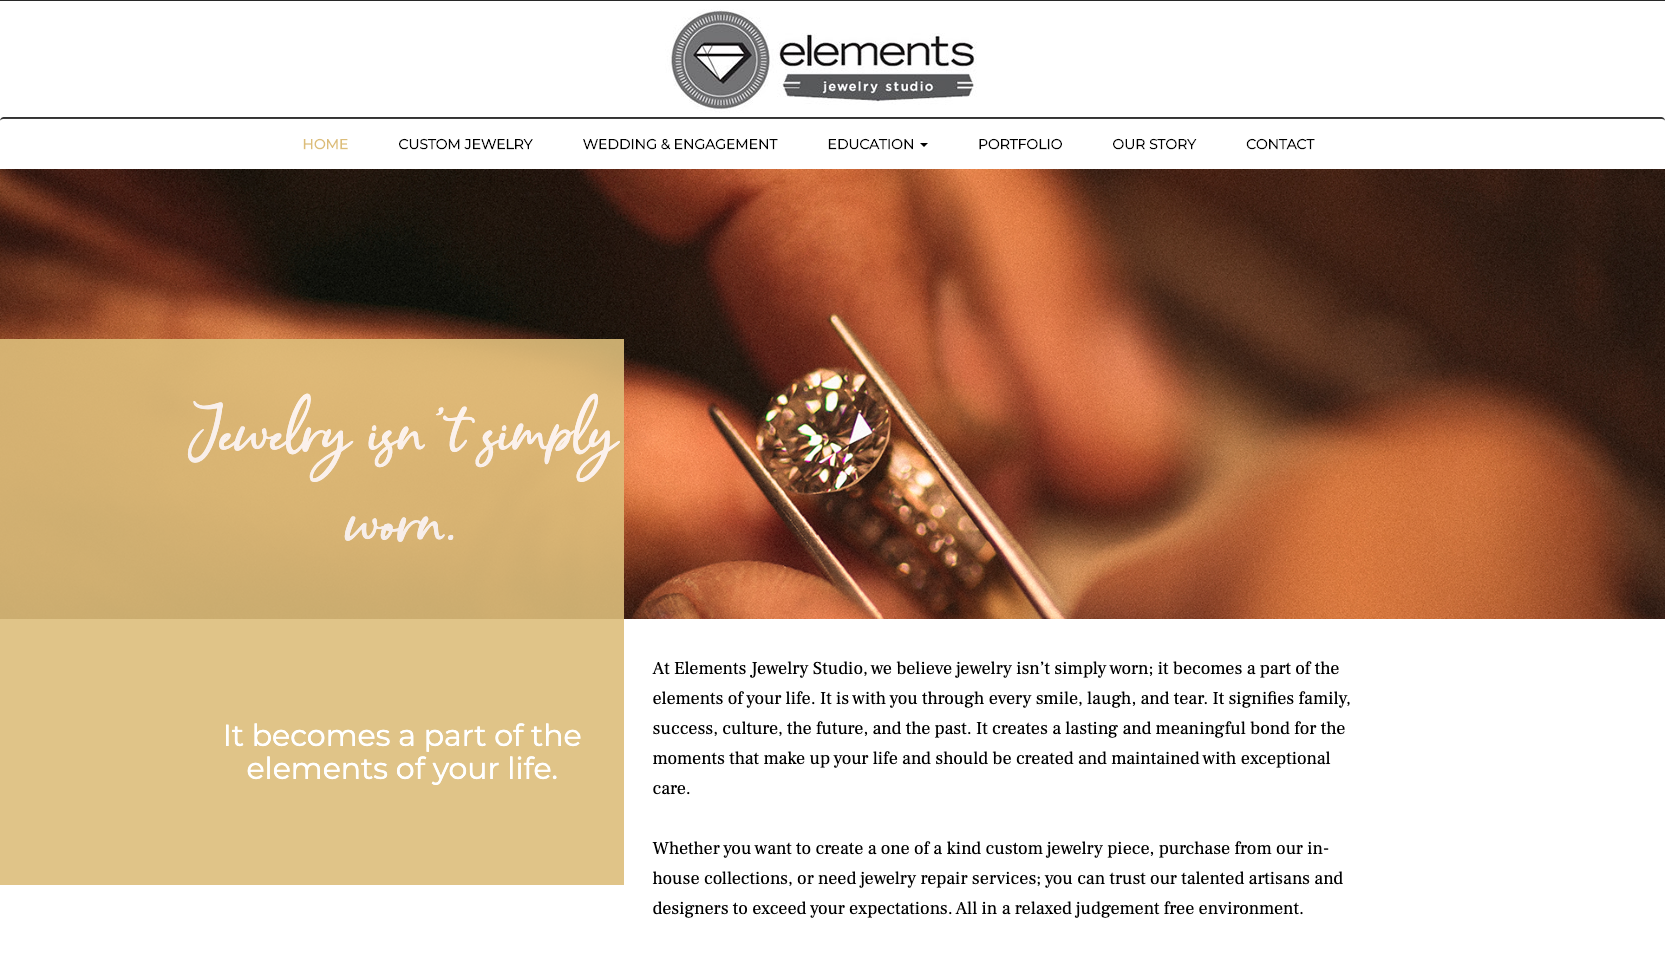 elements jewelry studio new website design